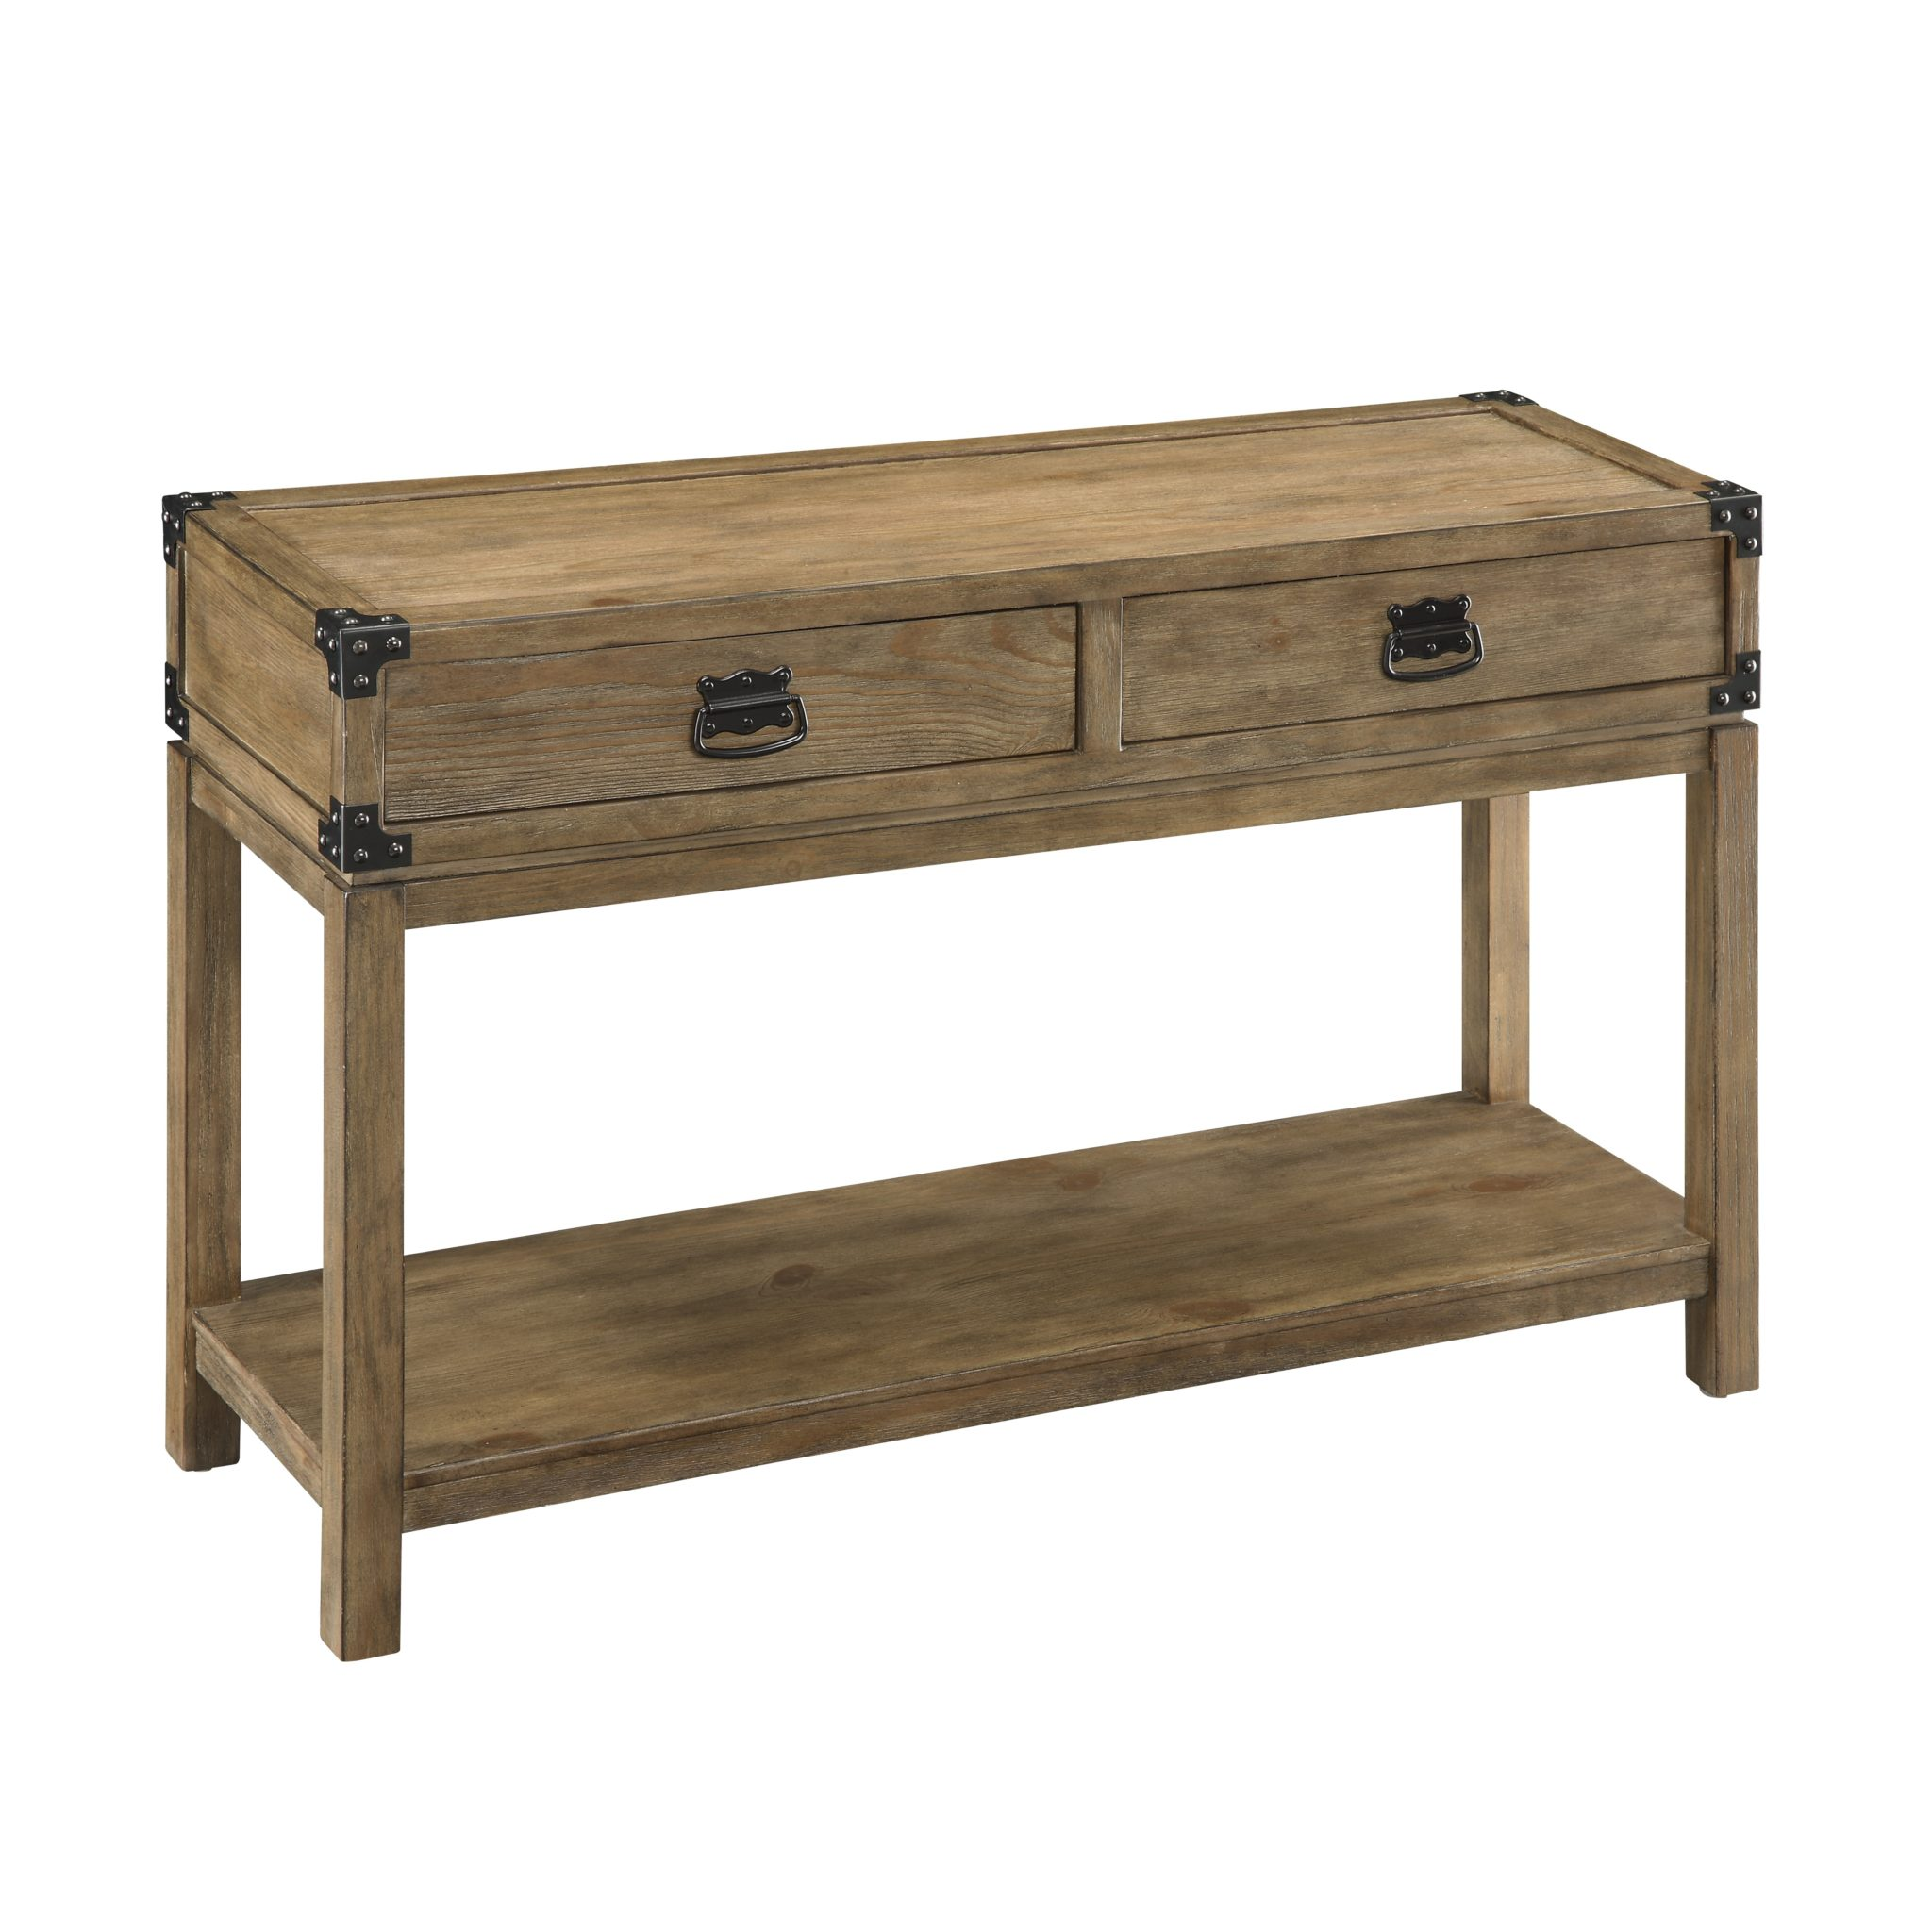 Groovy Rustic Console Table Ibusinesslaw Wood Chair Design Ideas Ibusinesslaworg